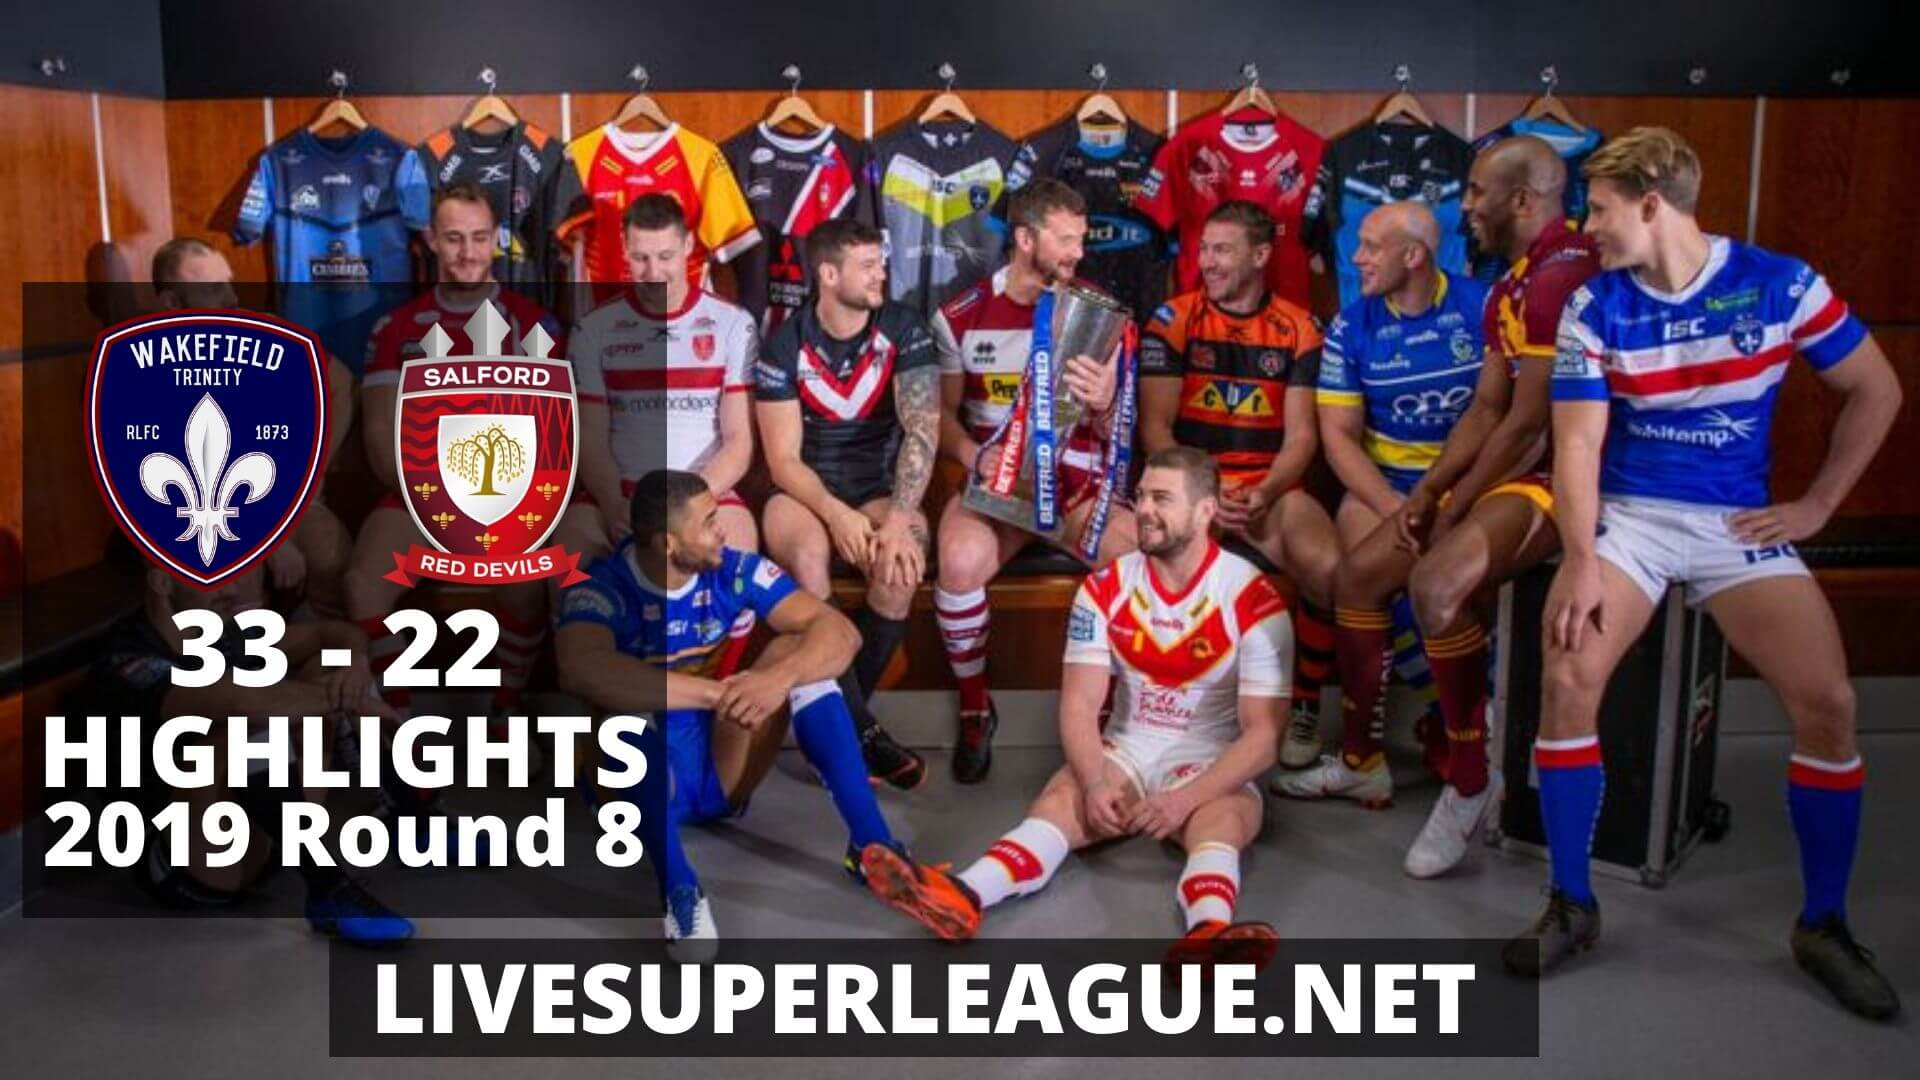 Wakefield Trinity Vs Salford Red Devils Highlights 2019 Round 8